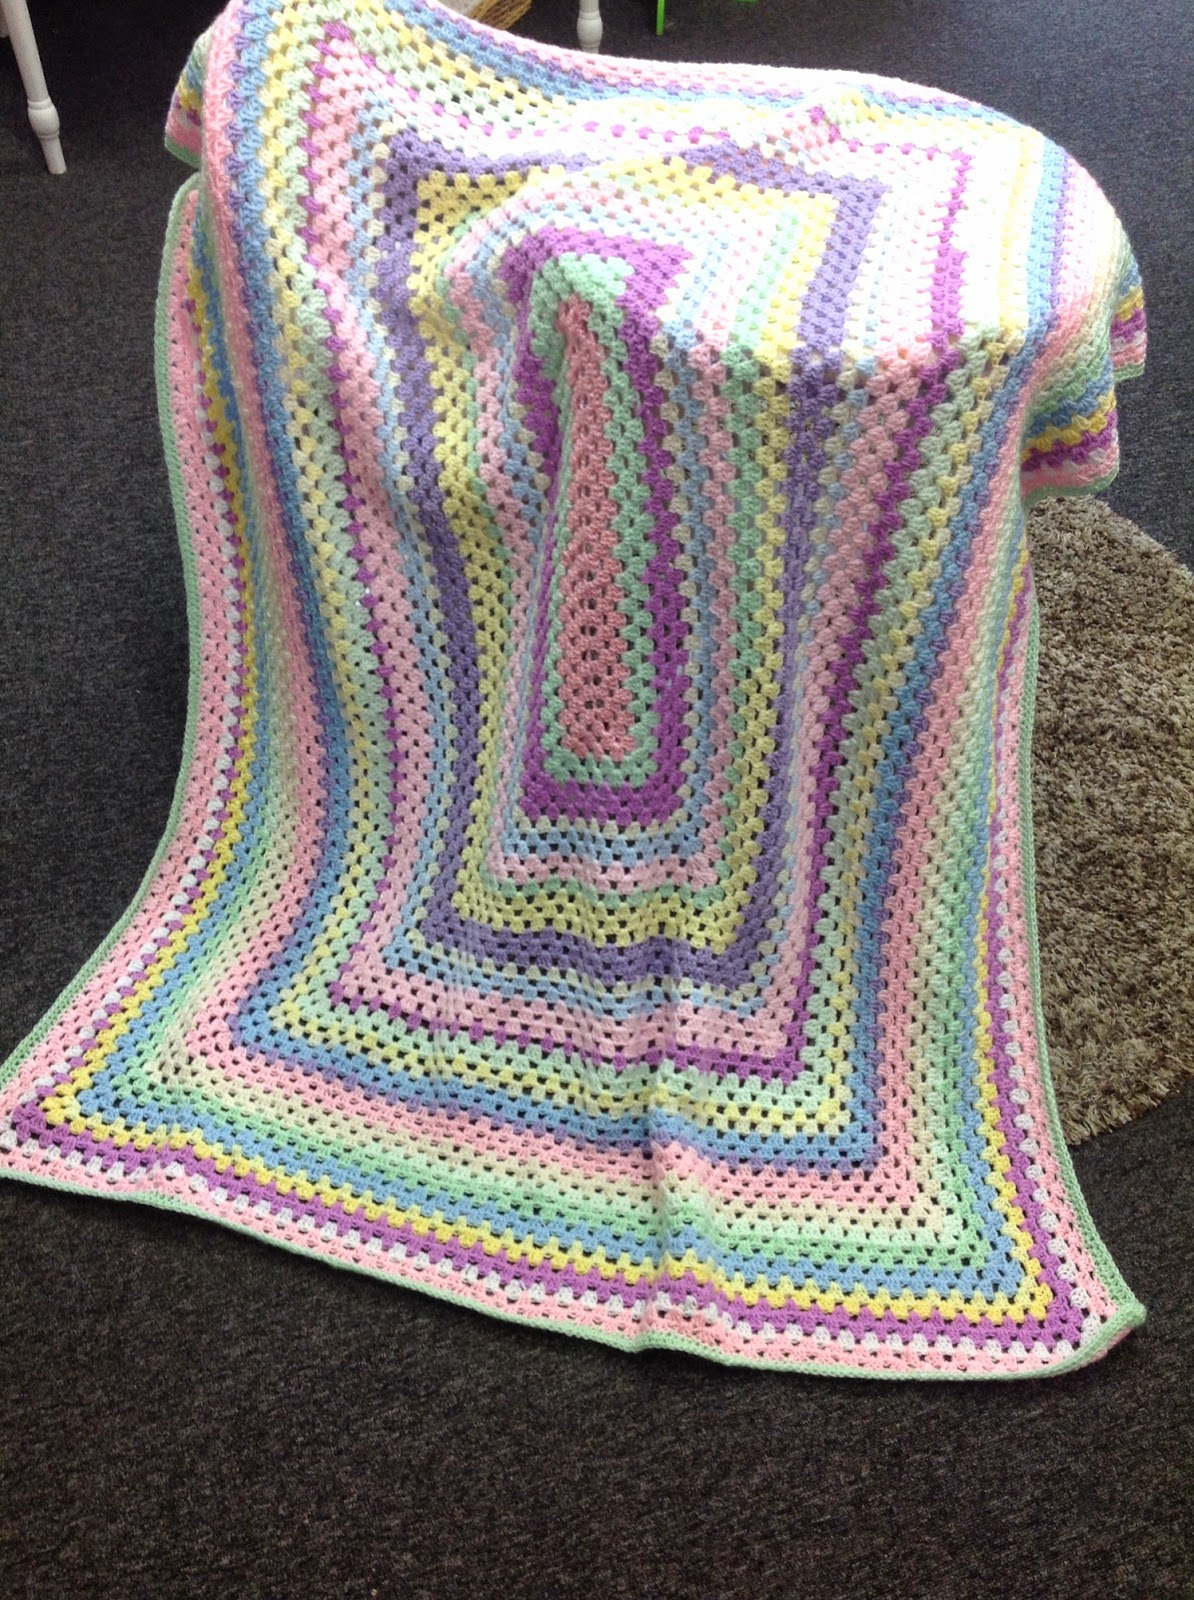 Crochet Patterns Rectangle : Yarn on Yarn off: Stash Blanket - rectangle granny stitch ...